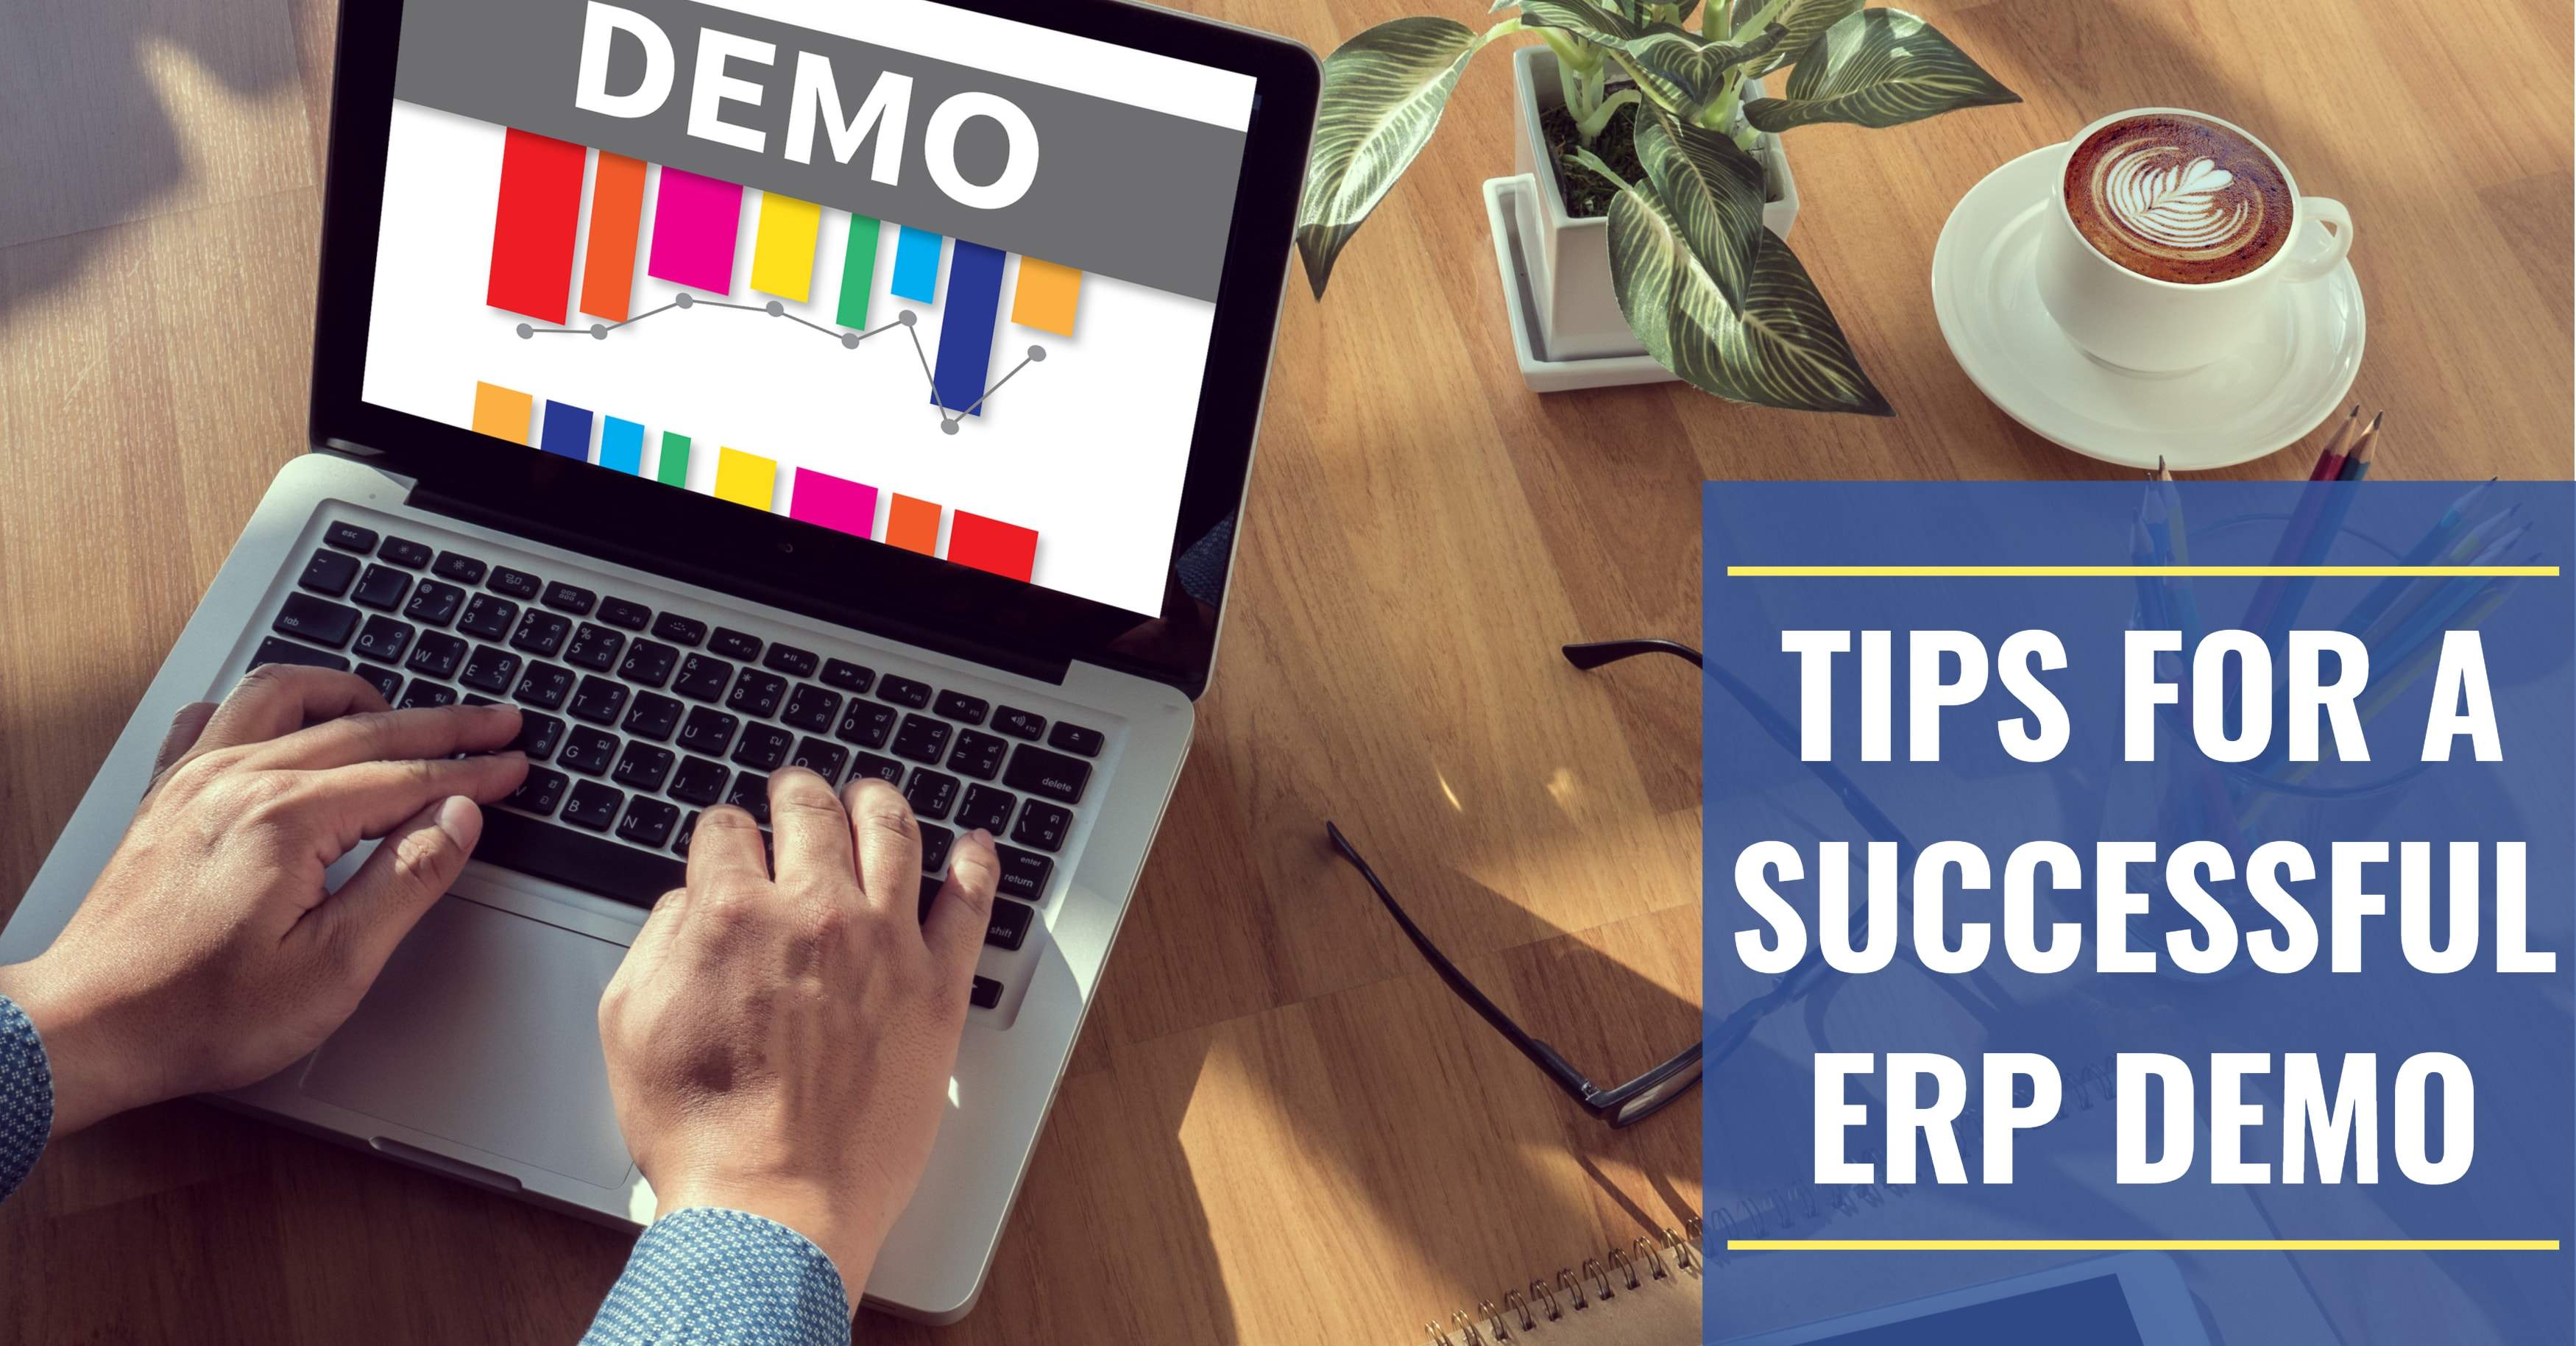 Tips for a Successful ERP Software Demo